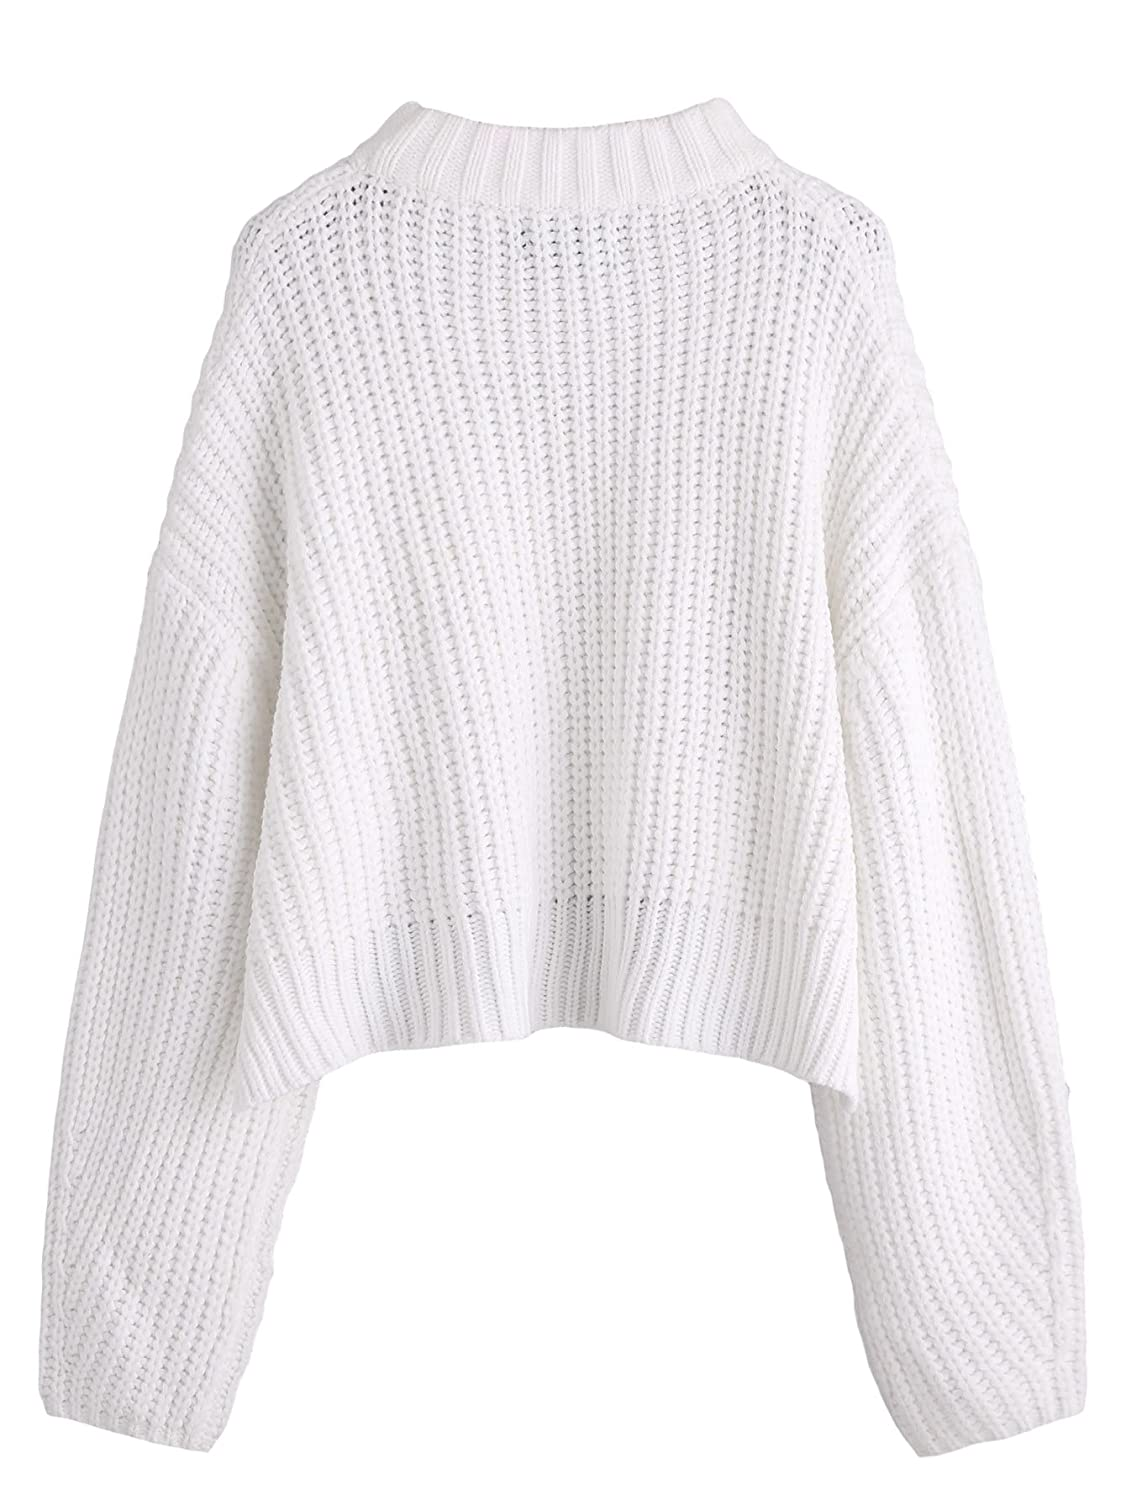 05a834df5258 SheIn Women's Mock Neck Drop Shoulder Oversized Batwing Sleeve Crop Top  Sweater White One-Size at Amazon Women's Clothing store: